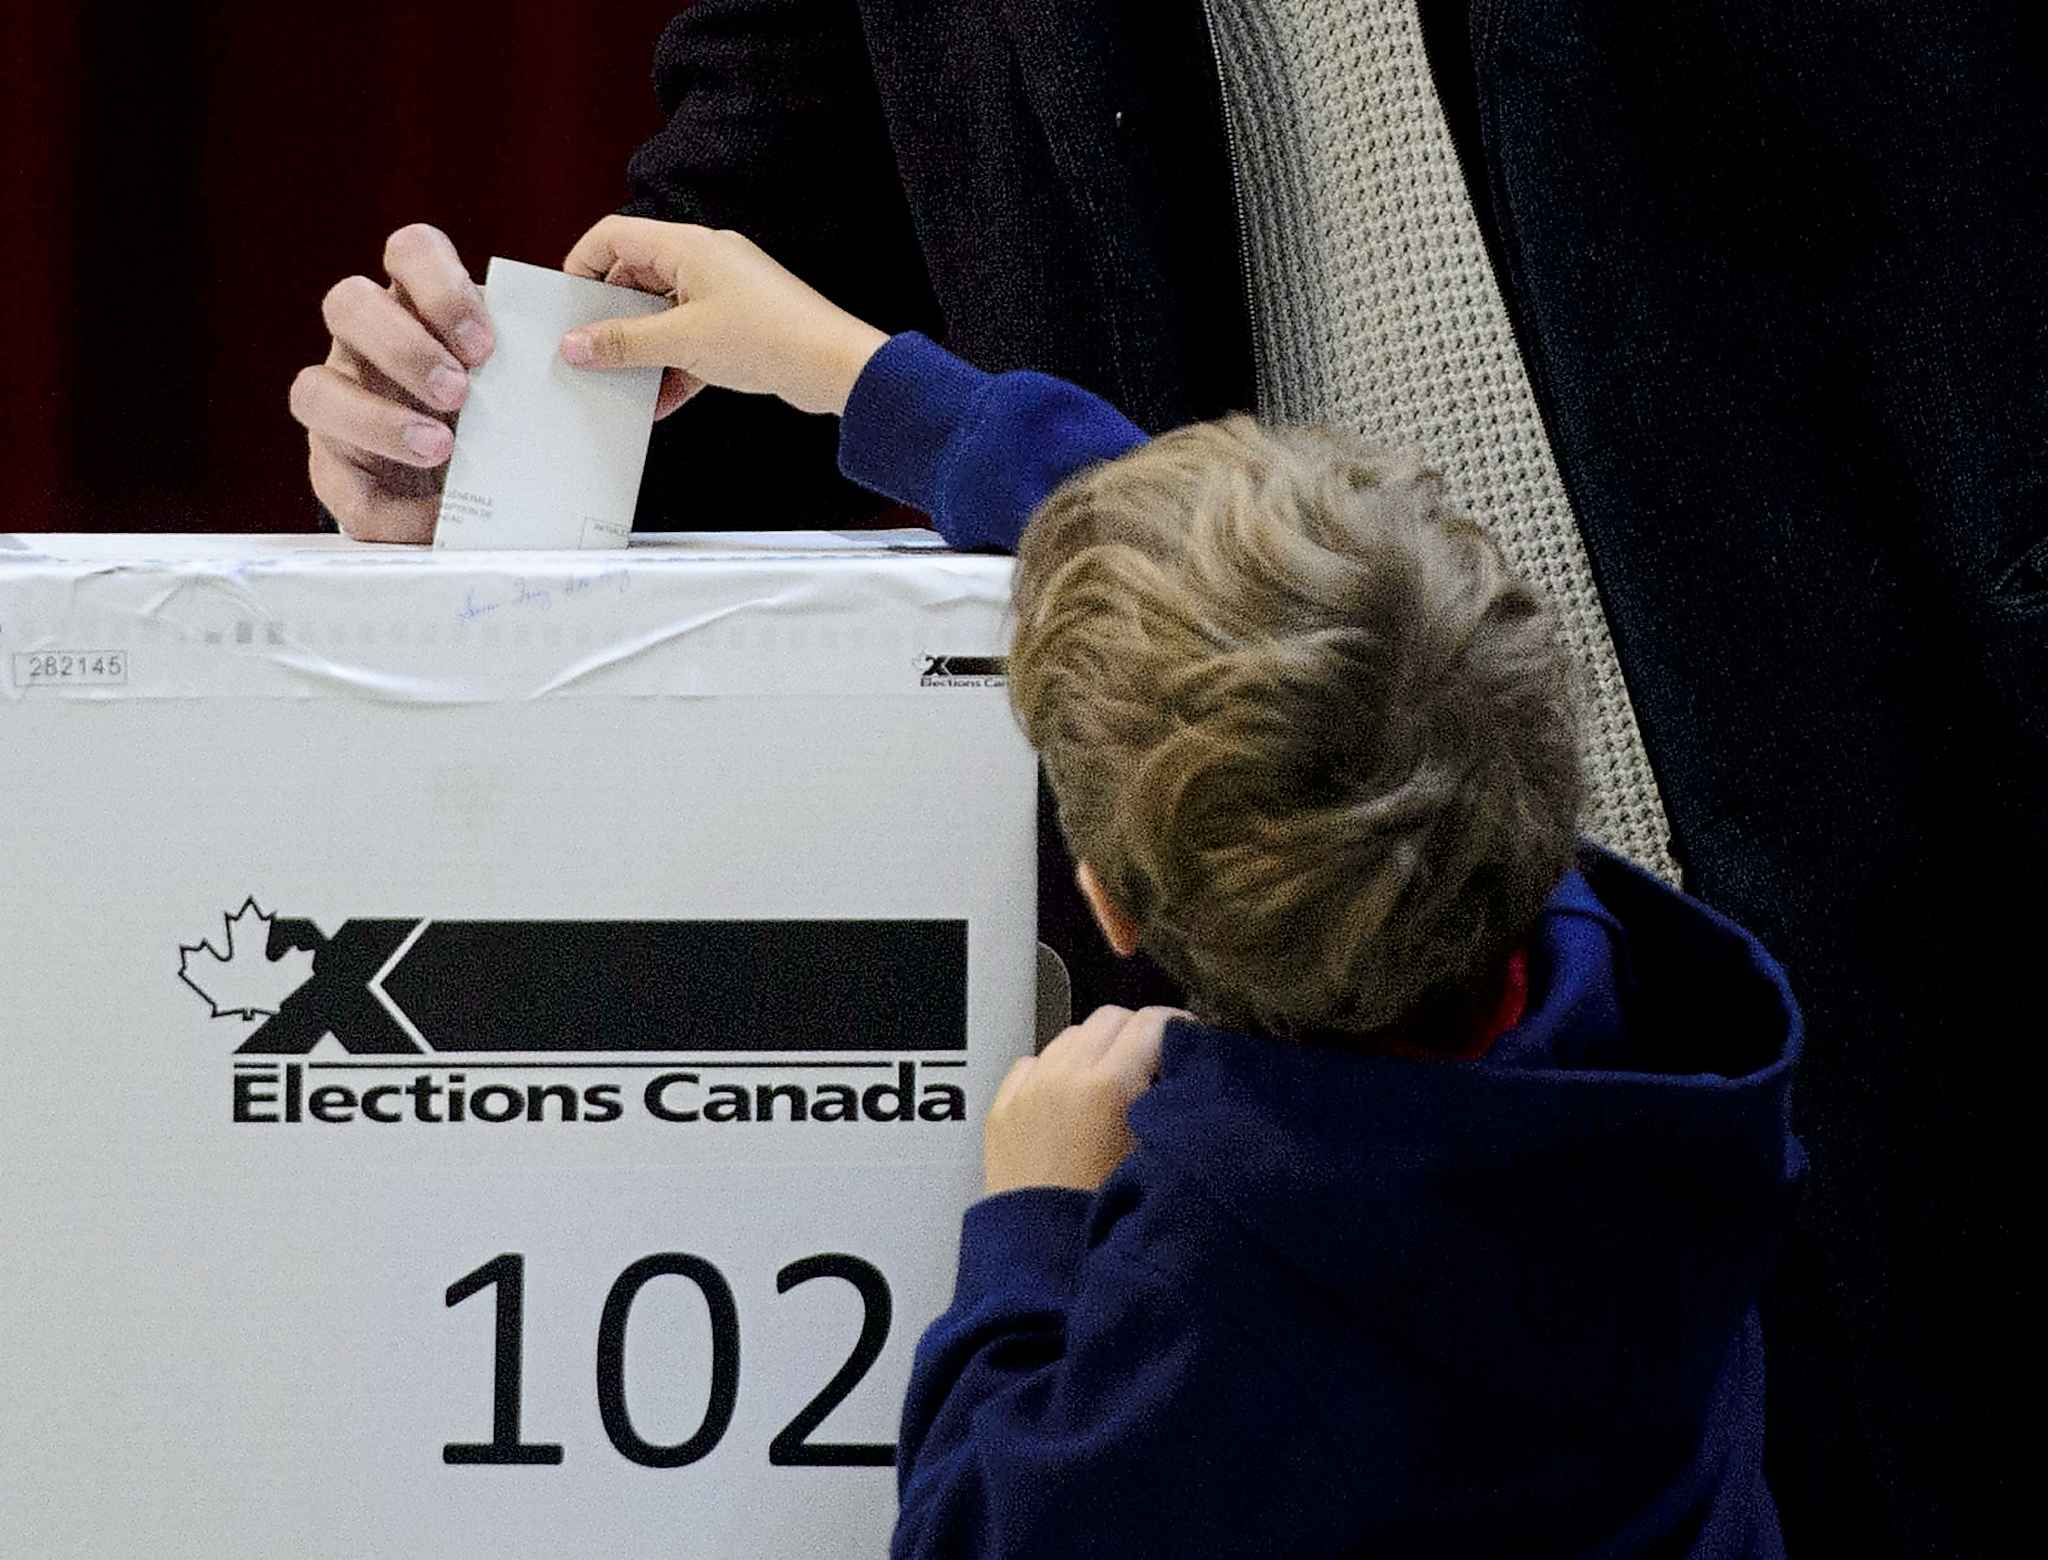 Federal elections in this country still rely on old-fashioned, marked paper ballots, manually inserted into ballot boxes, and then counted and tabulated by hand. (Sean Kilpatrick / Canadian Press files)